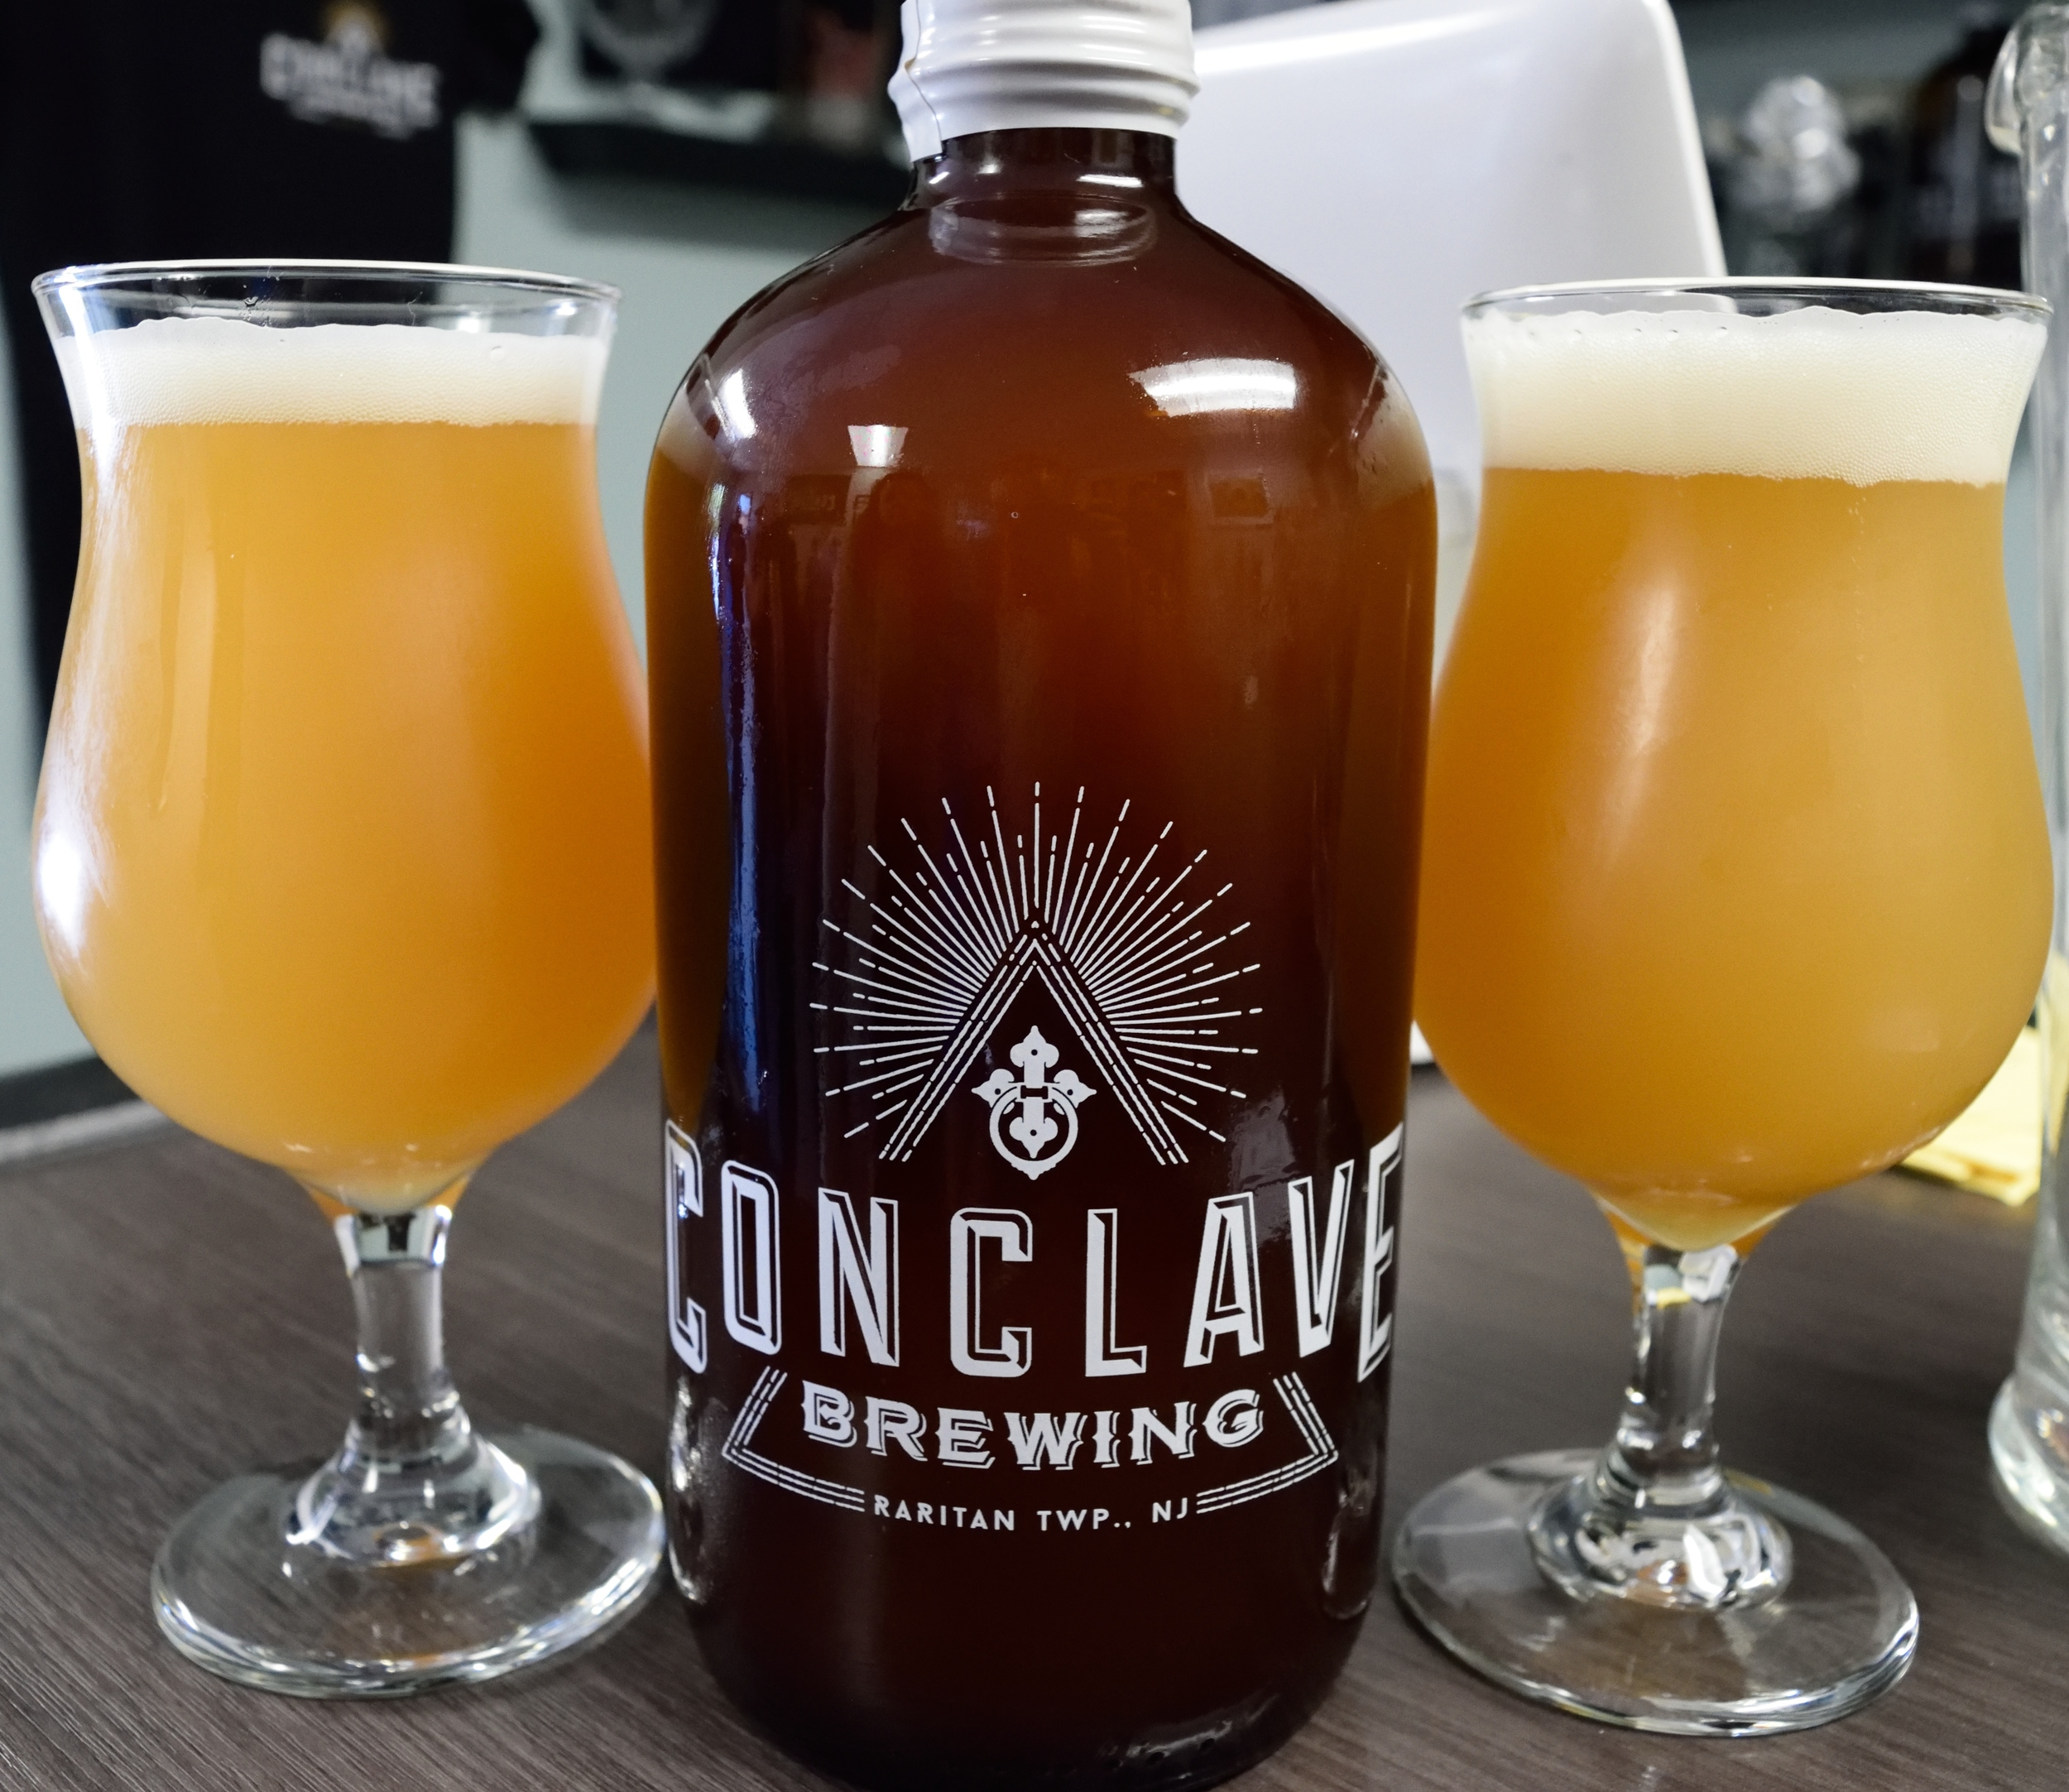 Make sure you bring a growler or purchase one, you're going to want to take something home!